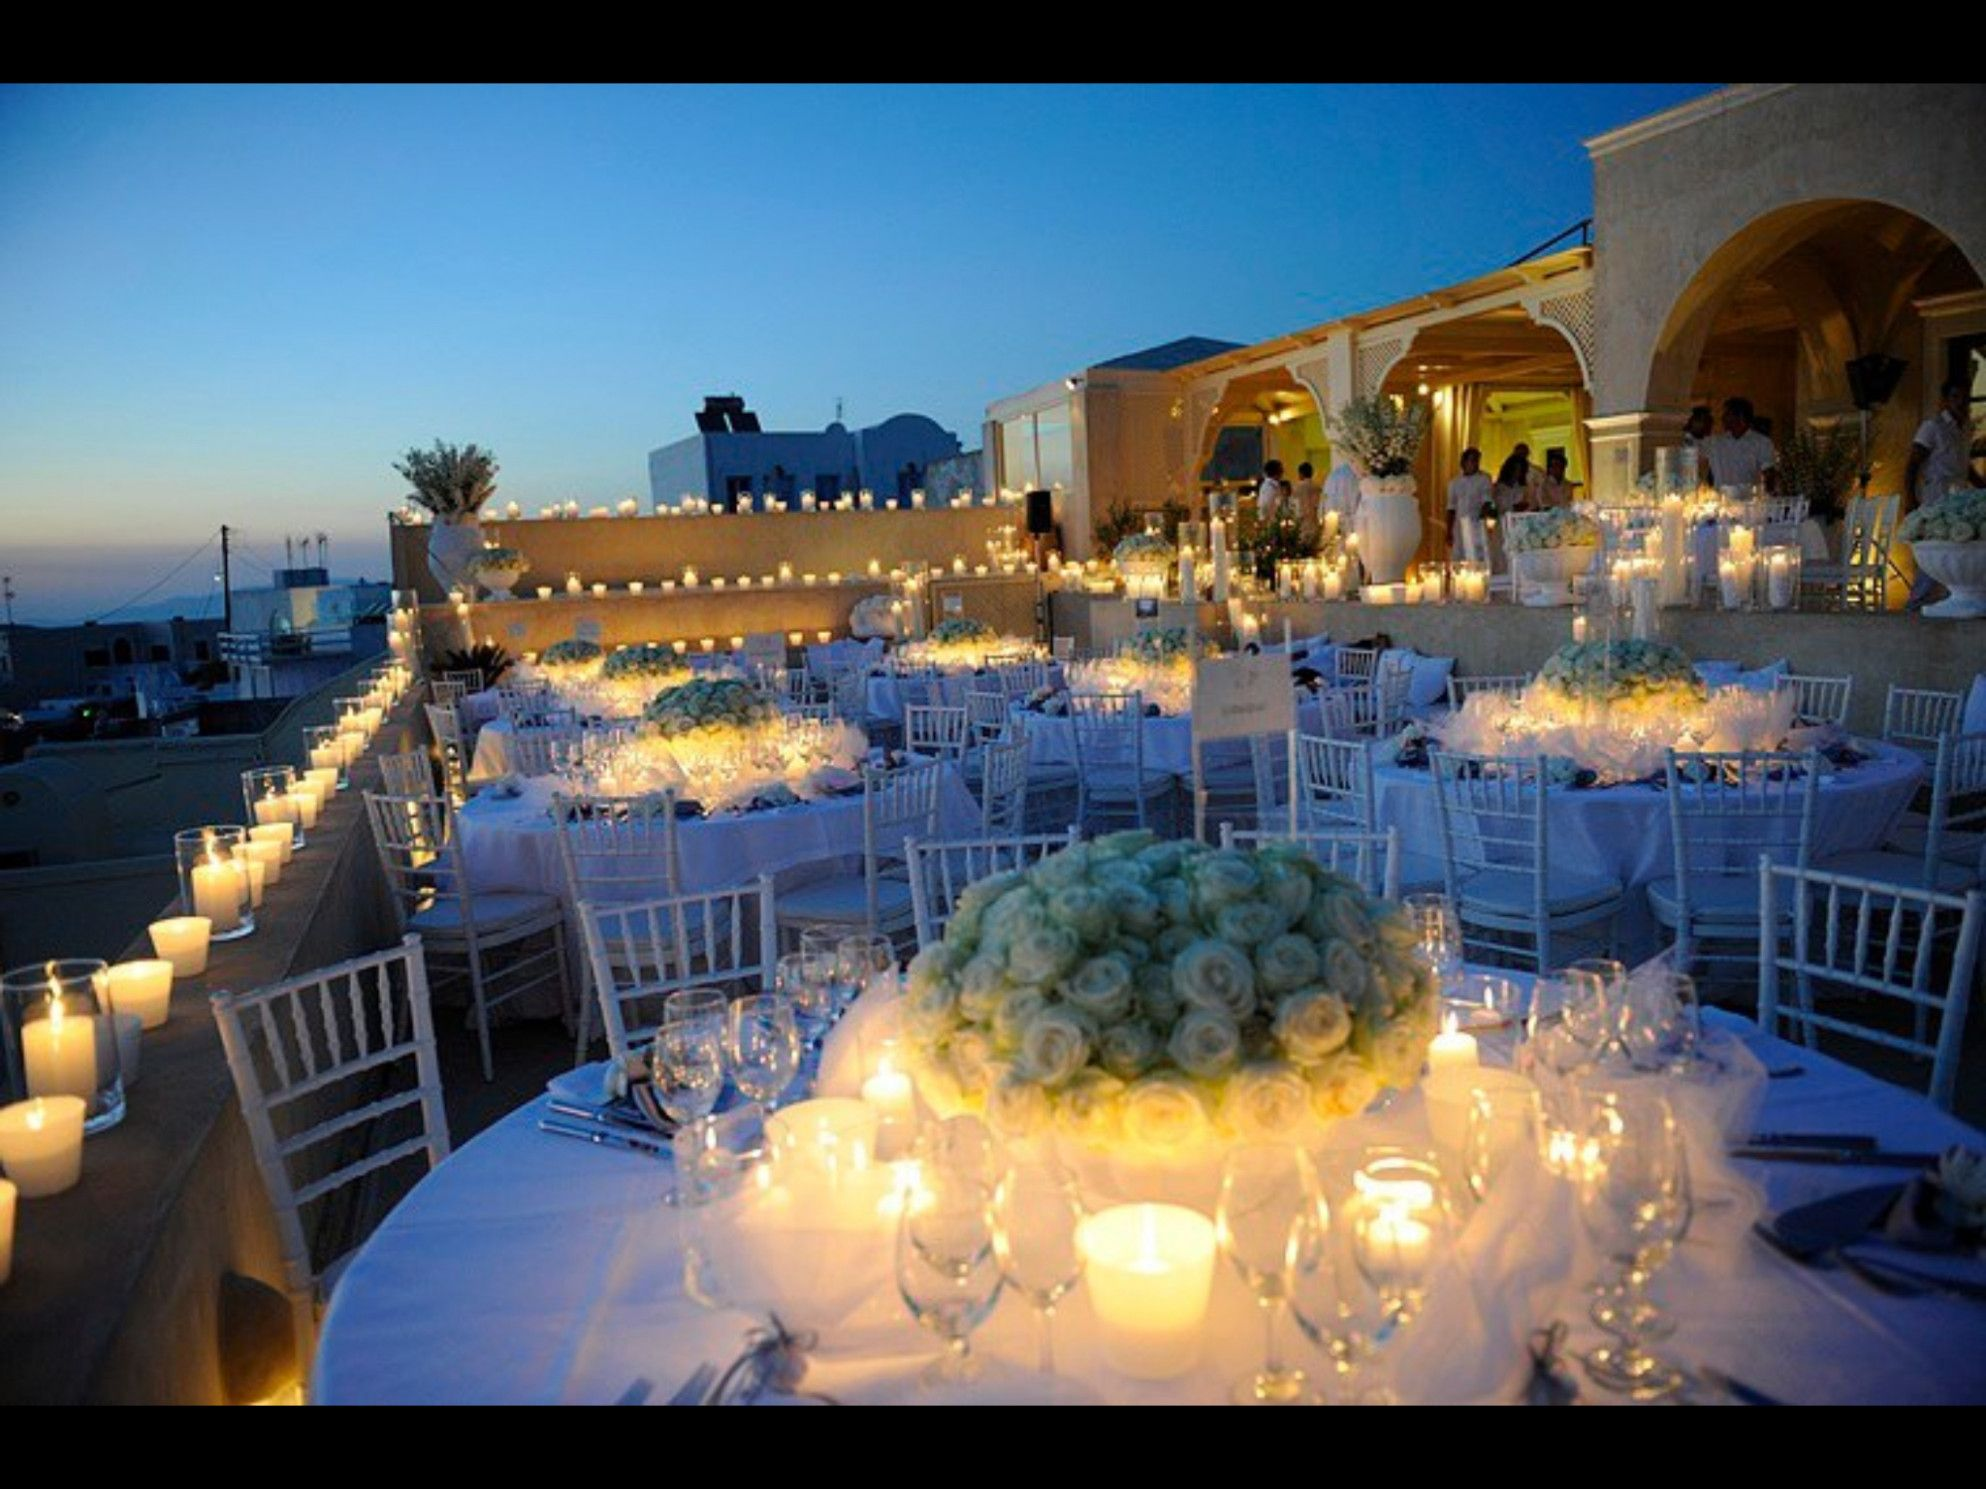 Wedding Venues Abroad Santorini Greece Best 25 Ideas On Pinterest Venue